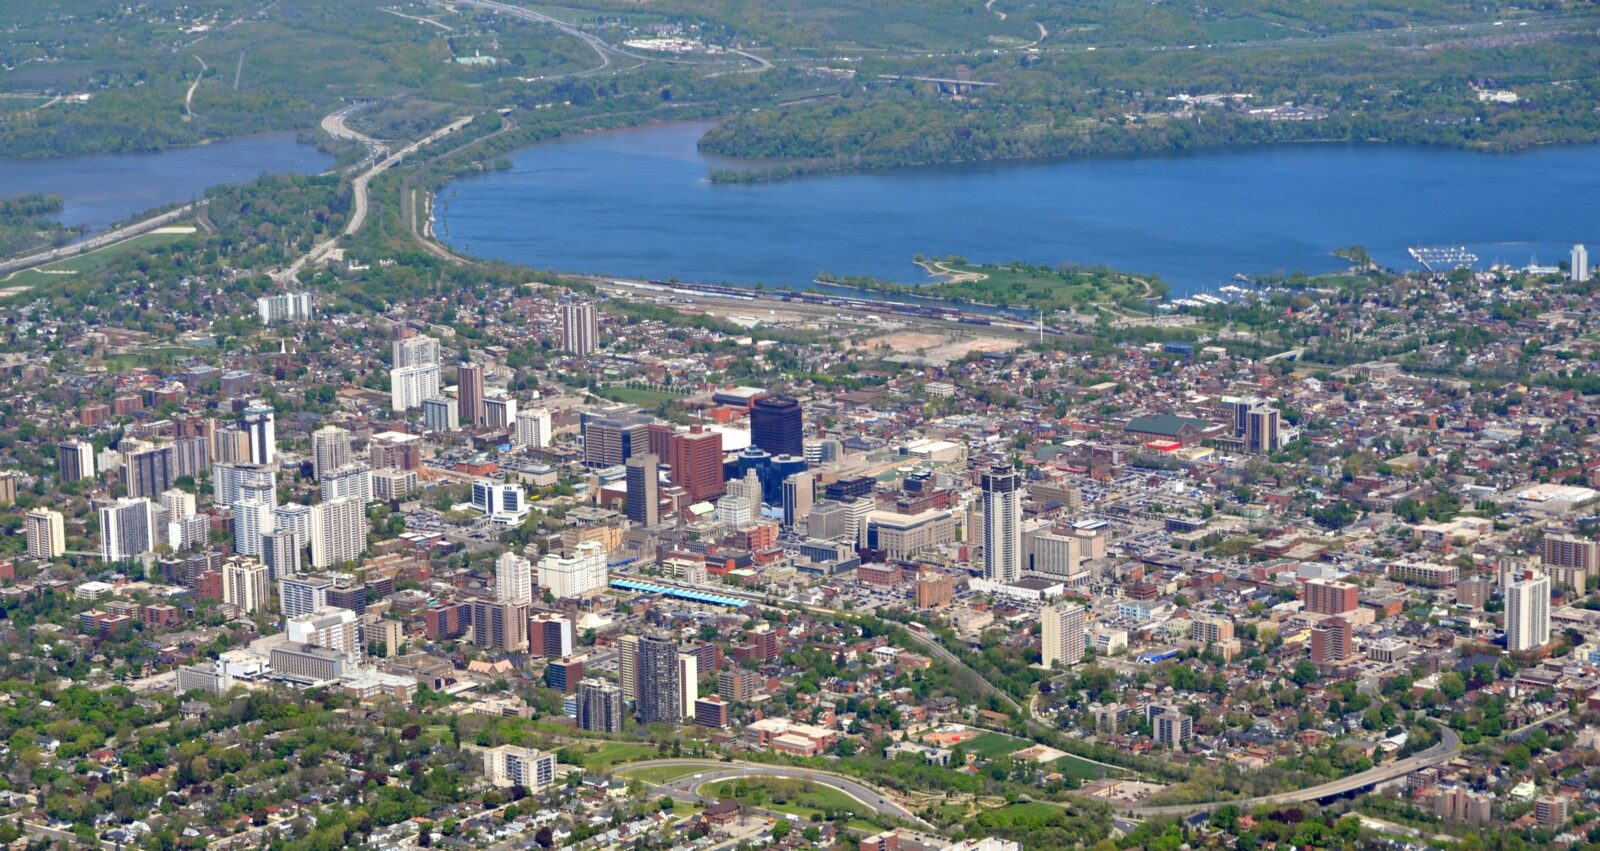 Panorama aerial view of downtown Hamilton, Ontario